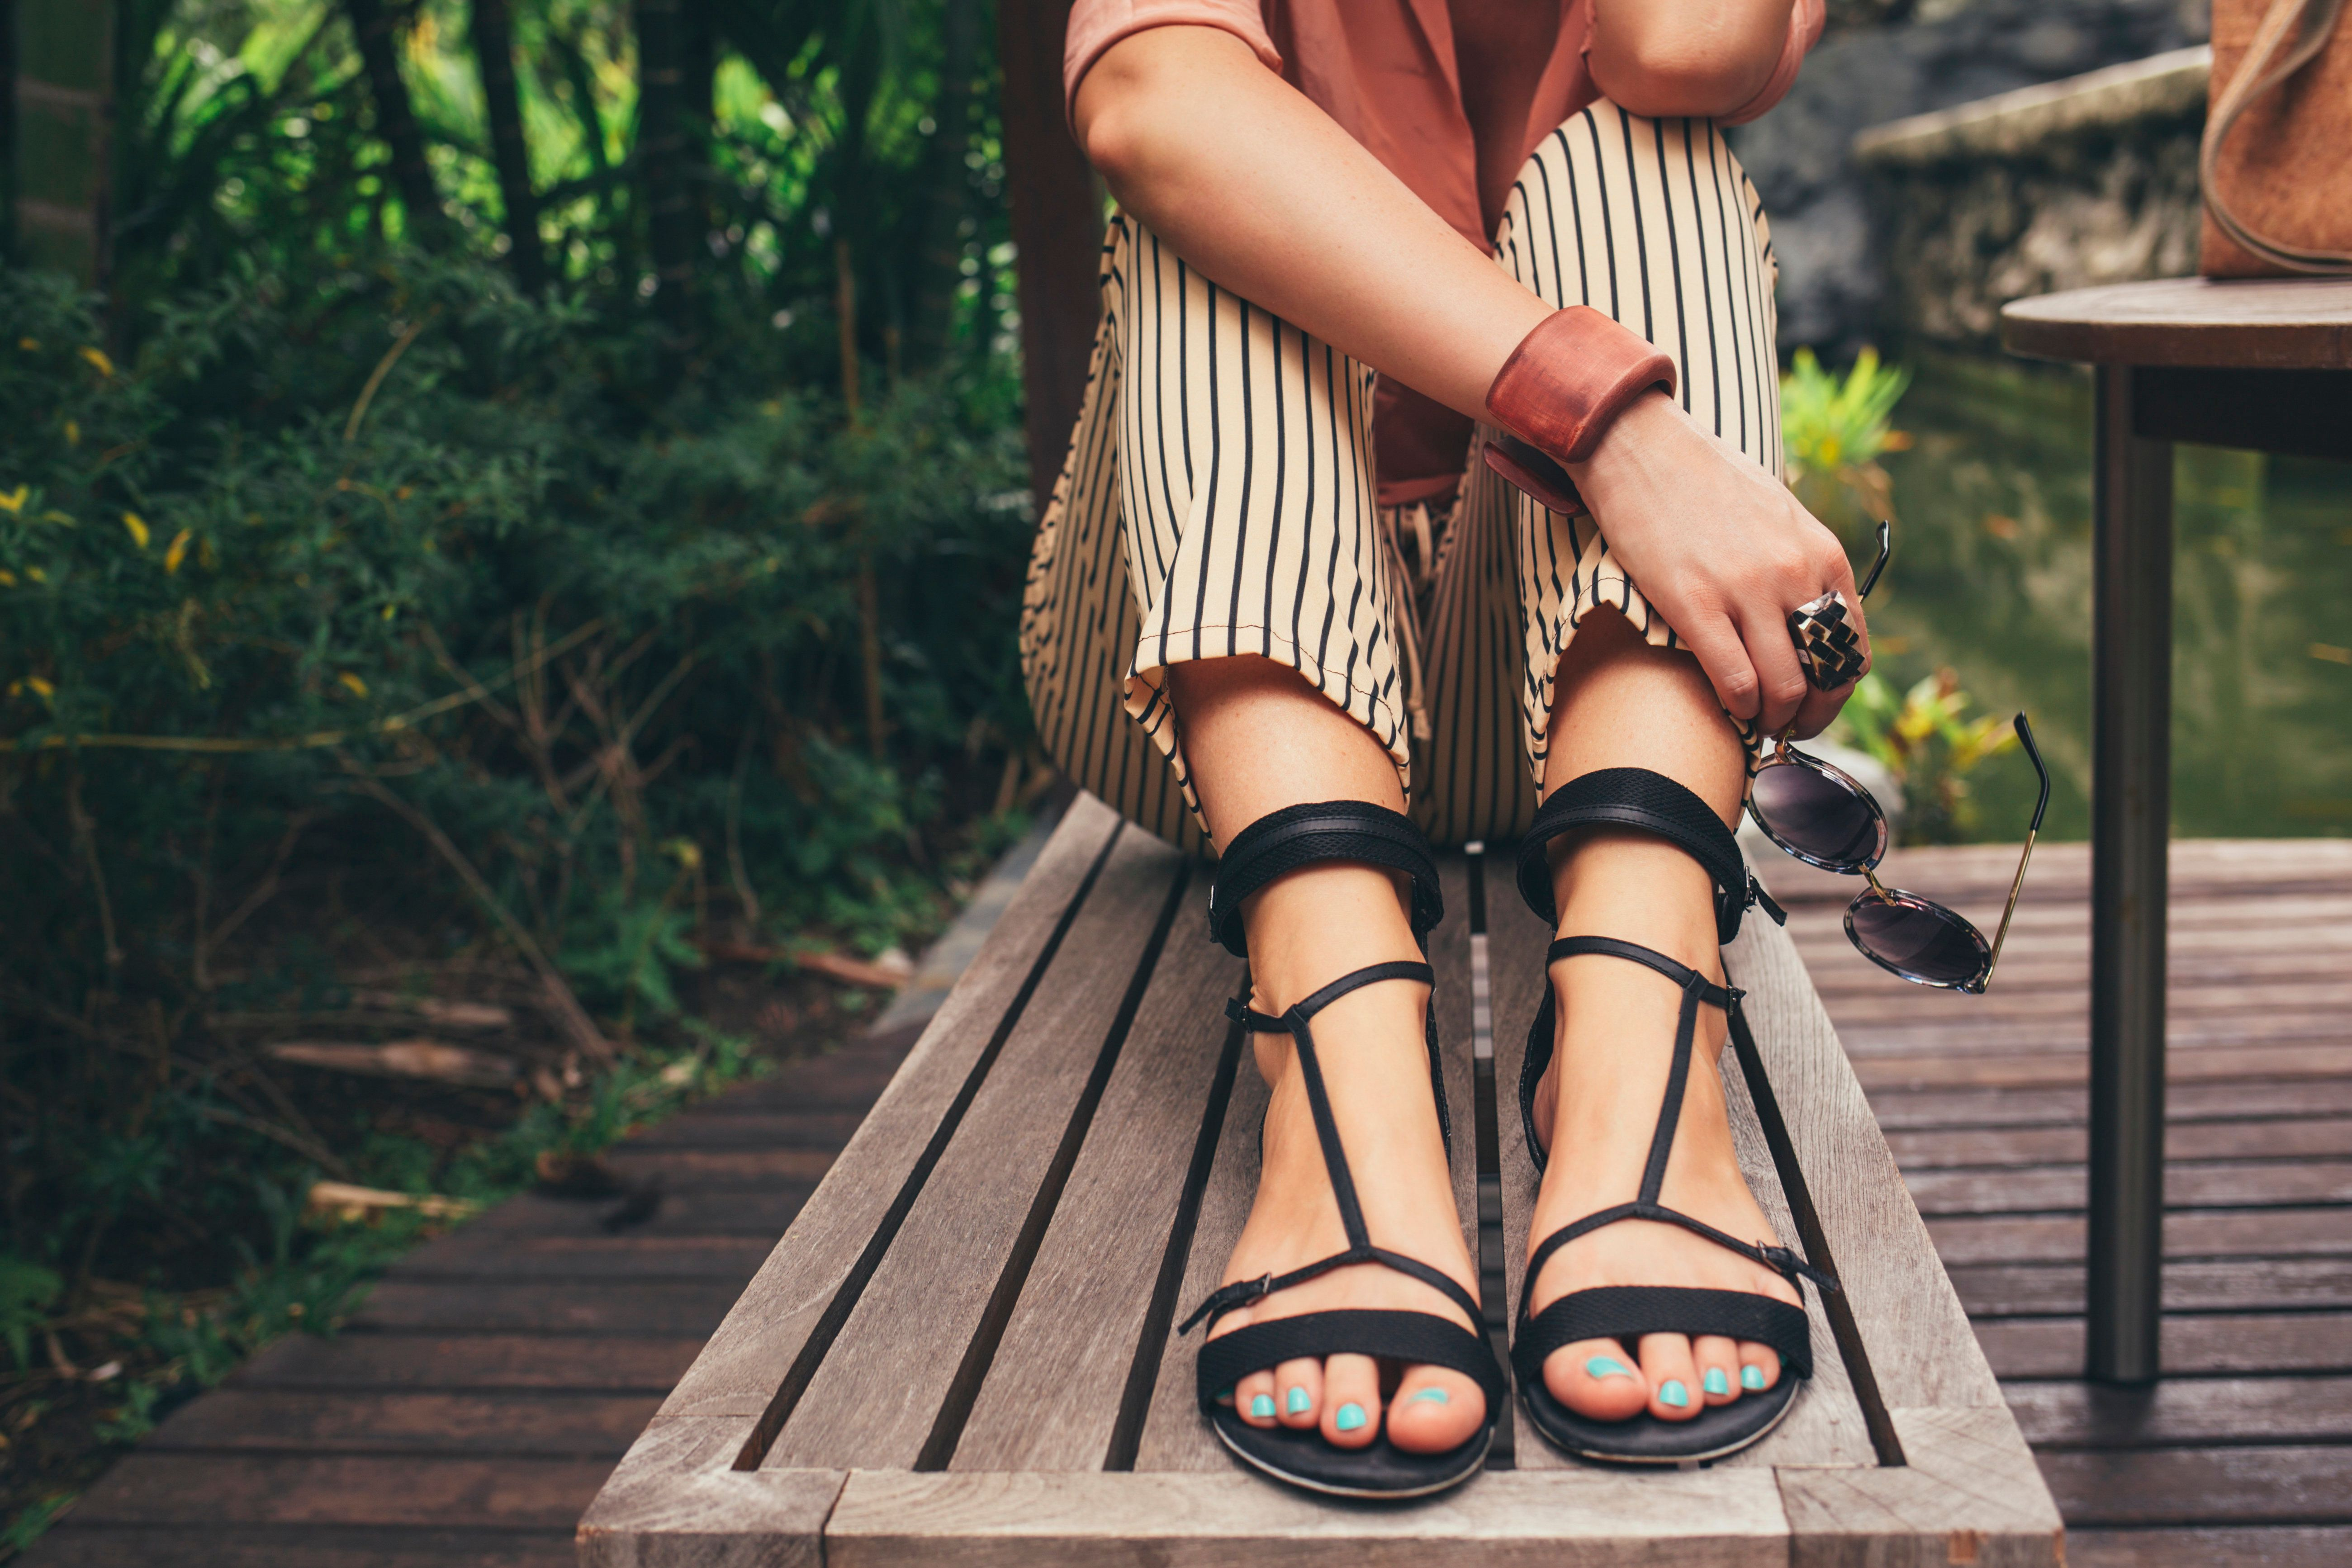 Sandal season is coming, and you may or may not want to do something with your feet.